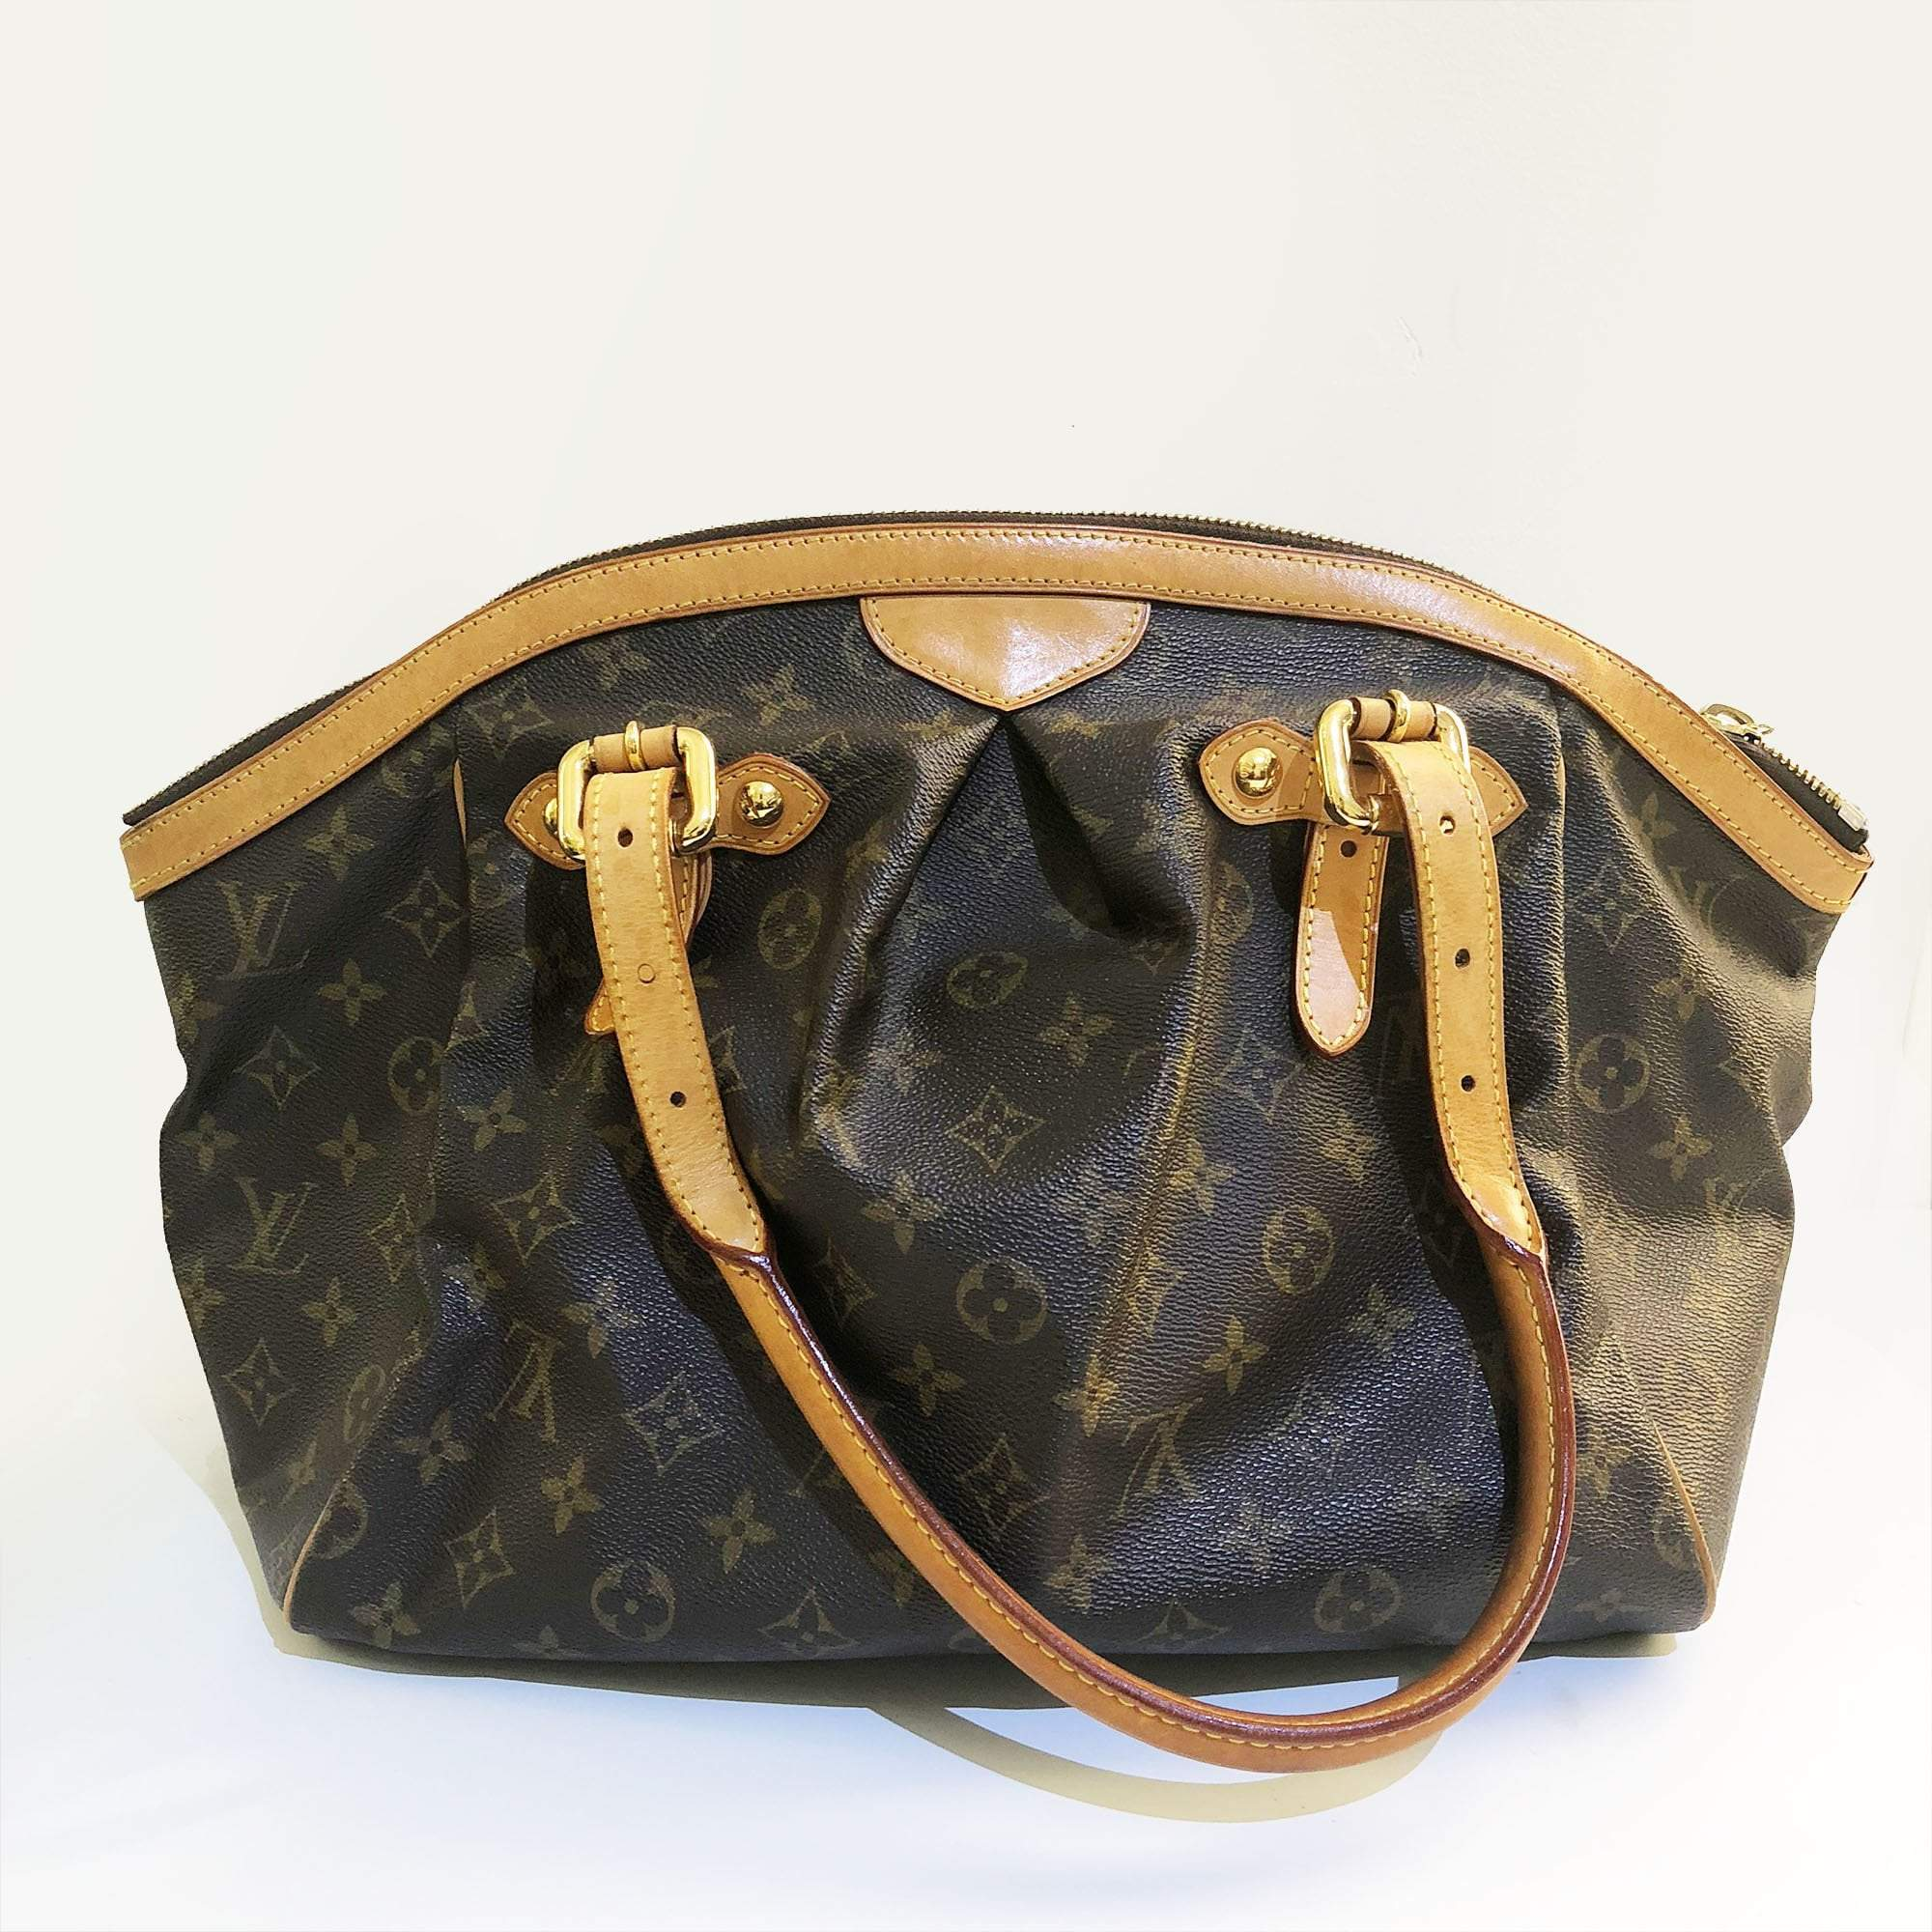 Tivoli Gm Louis Vuitton Alma Monogram Bag Garderobe